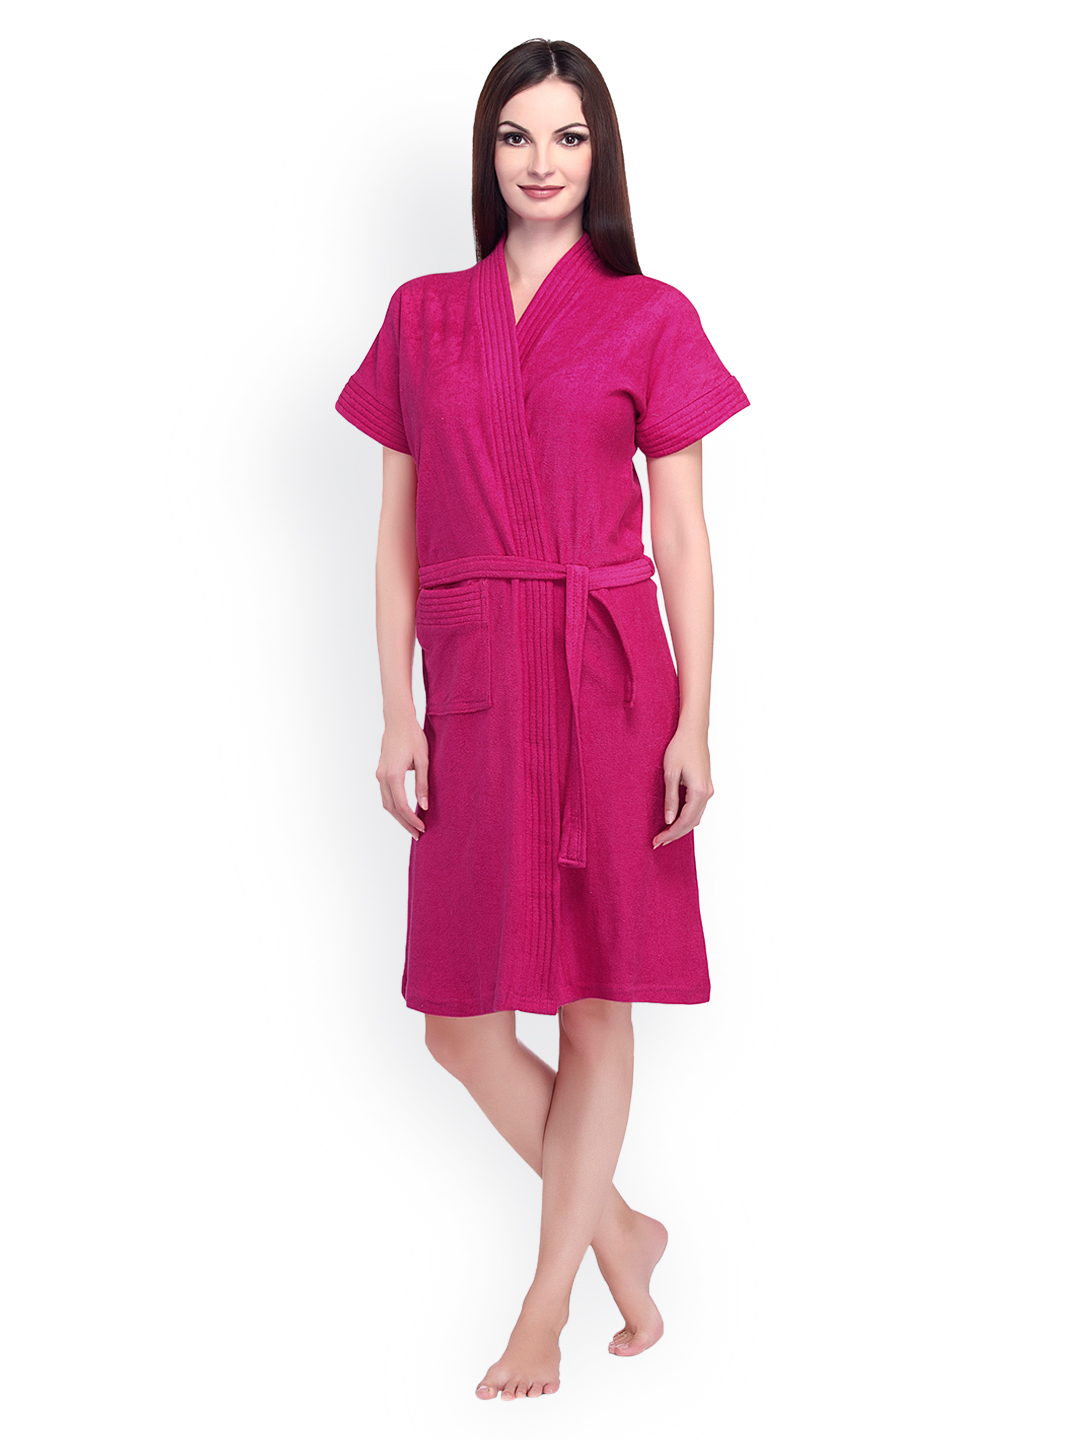 Bath Robe - Buy Bath Robes Online in India | Myntra